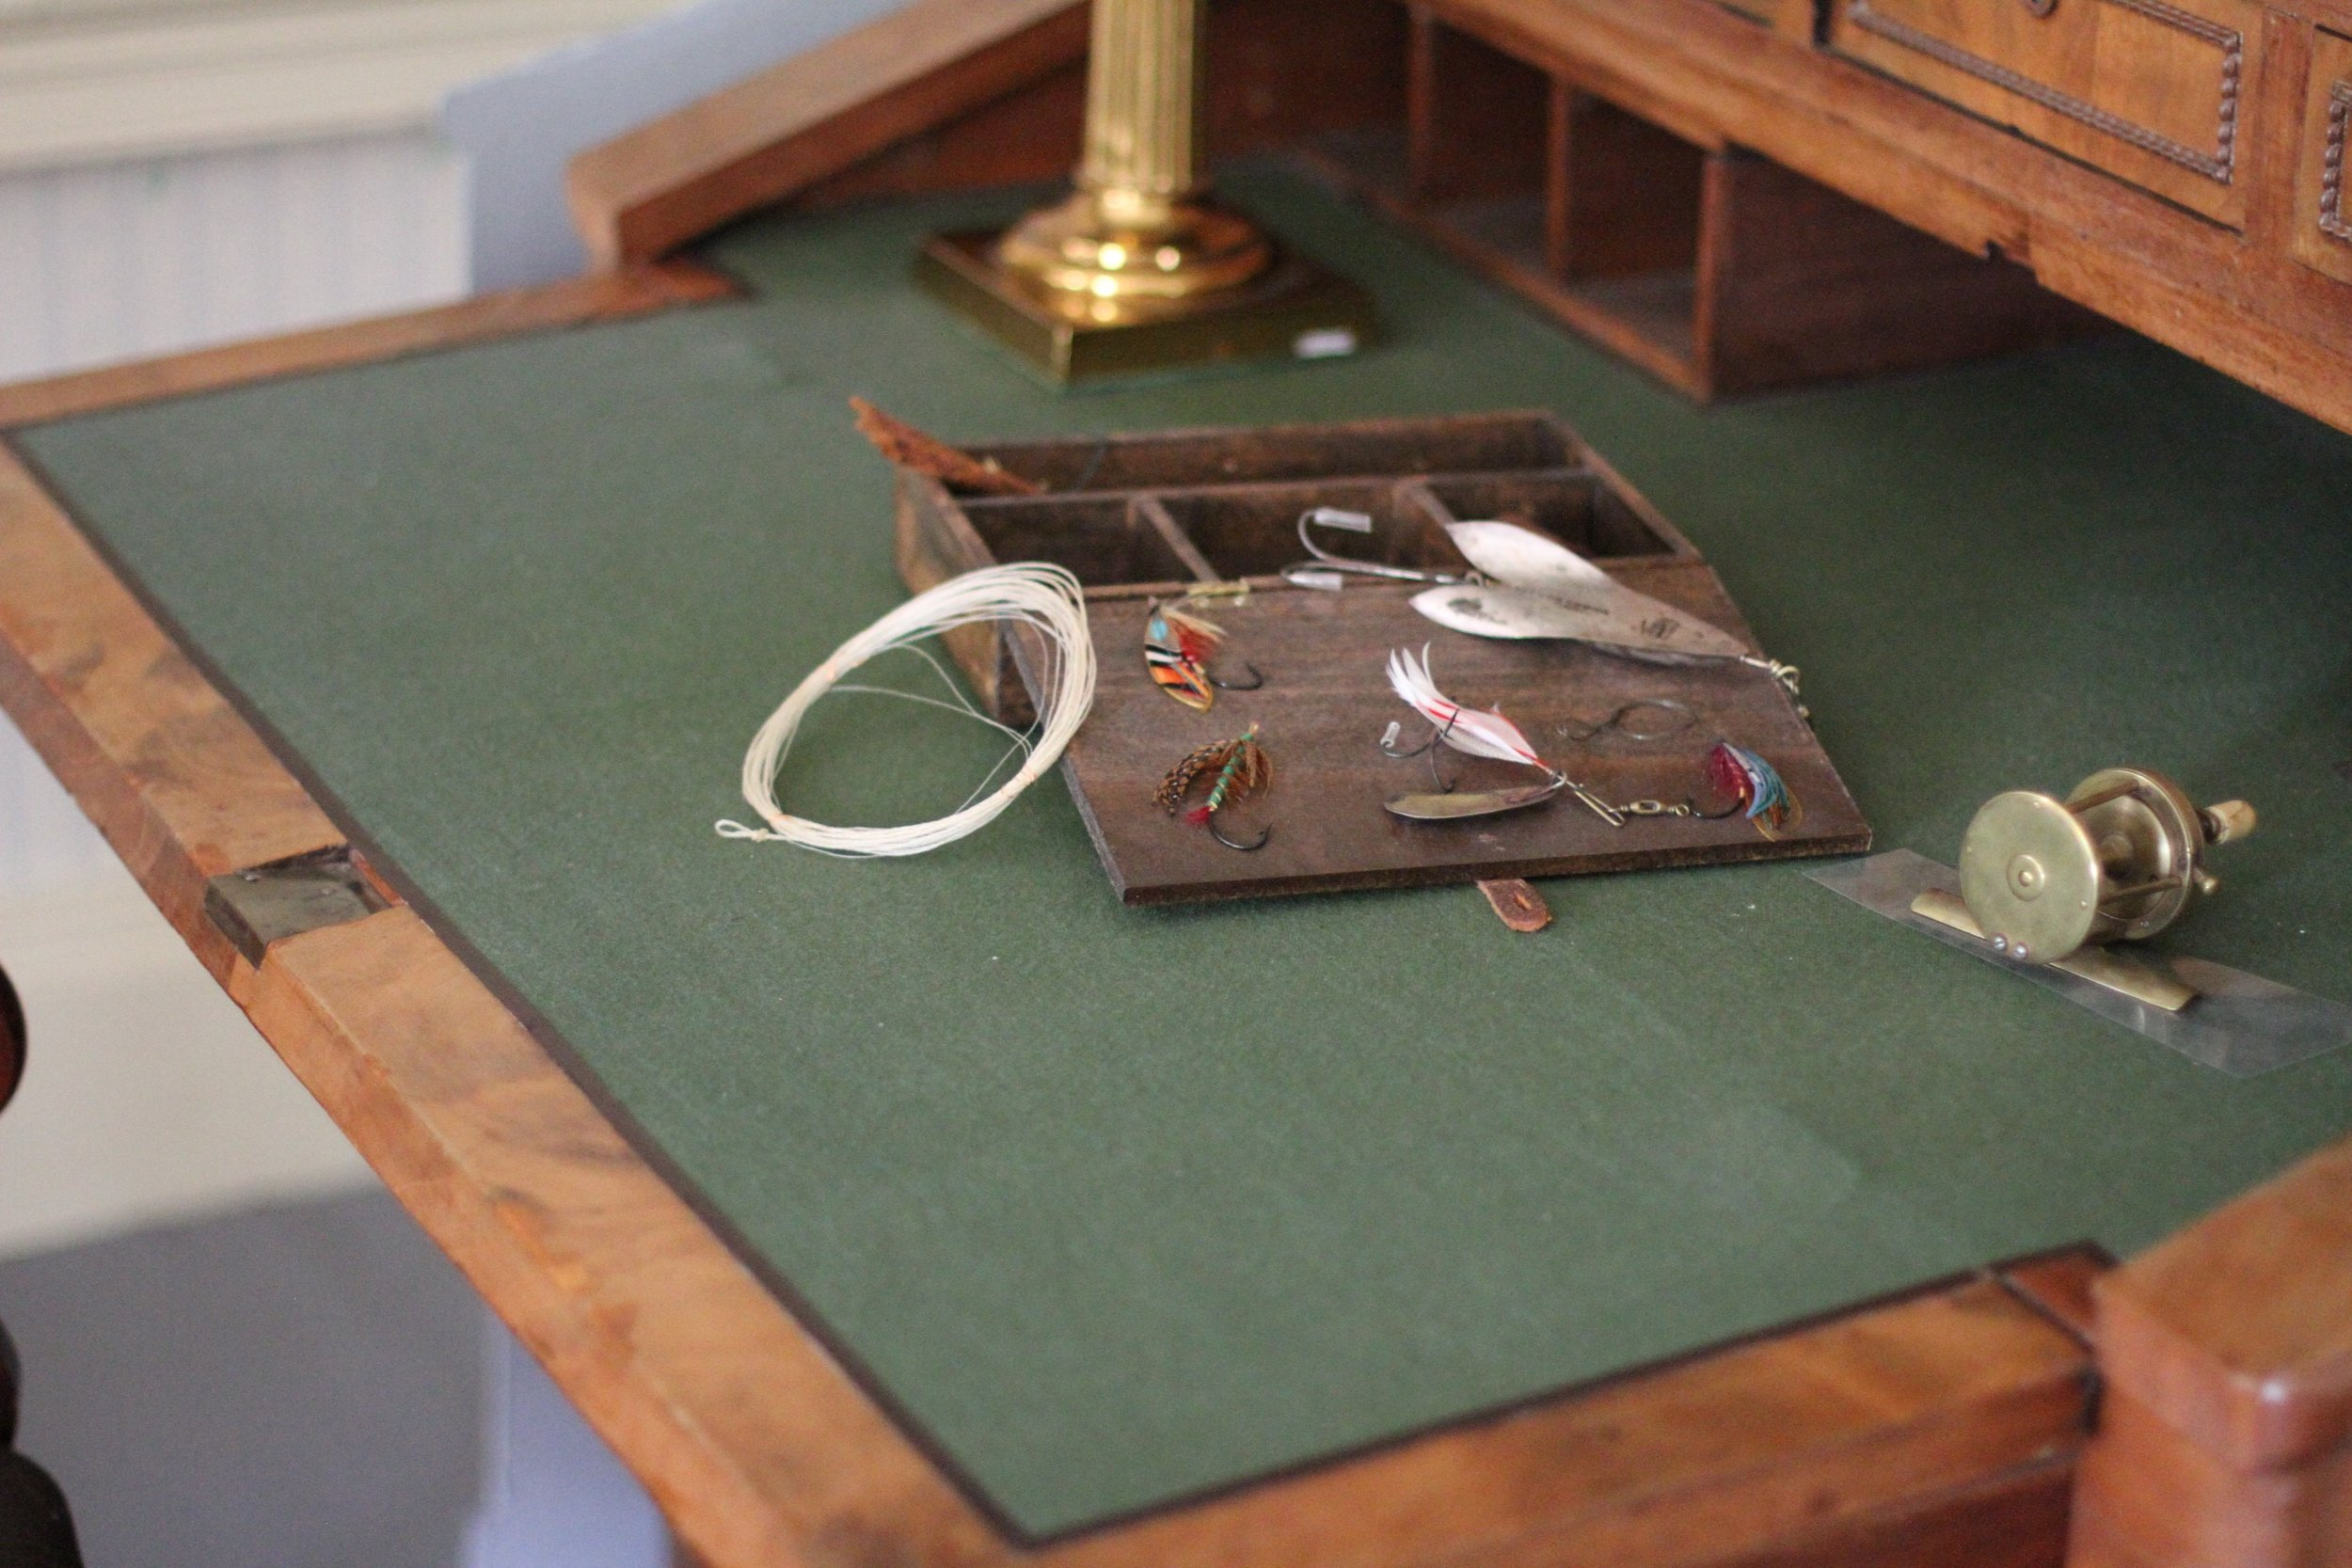 The President's fishing tackle on his writing desk.